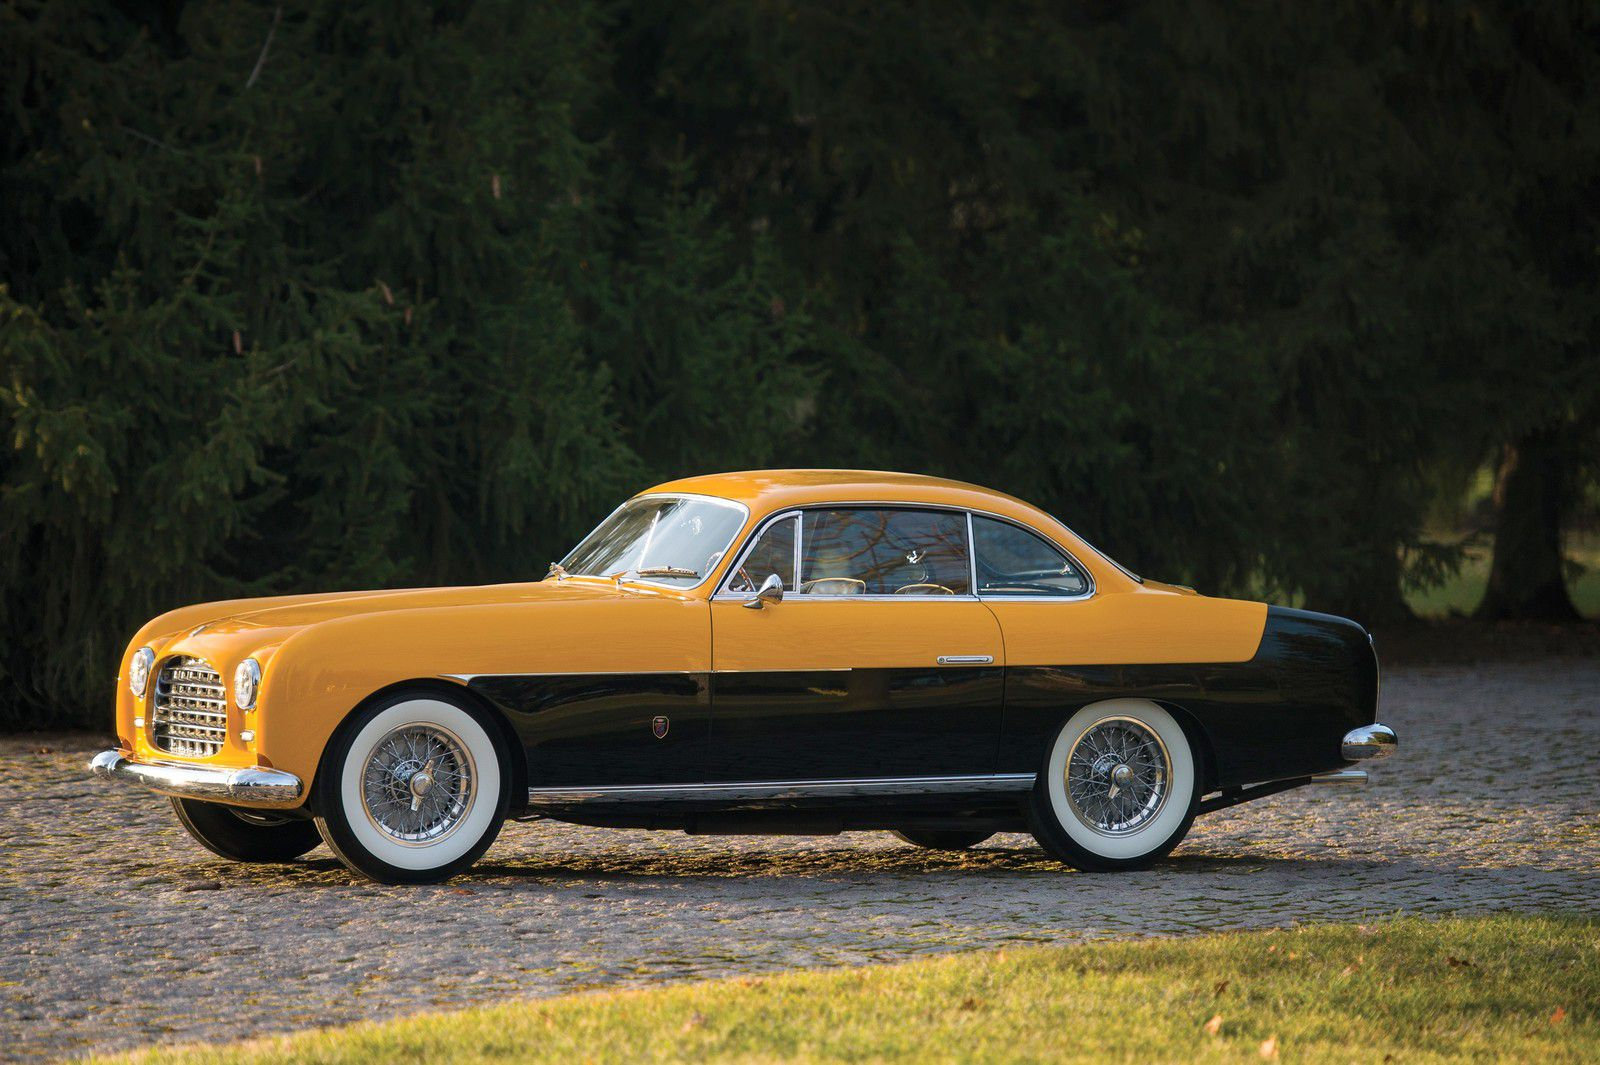 VOITURES DE LEGENDE (1206) : FERRARI  212 INTER GHIA COUPE - 1952